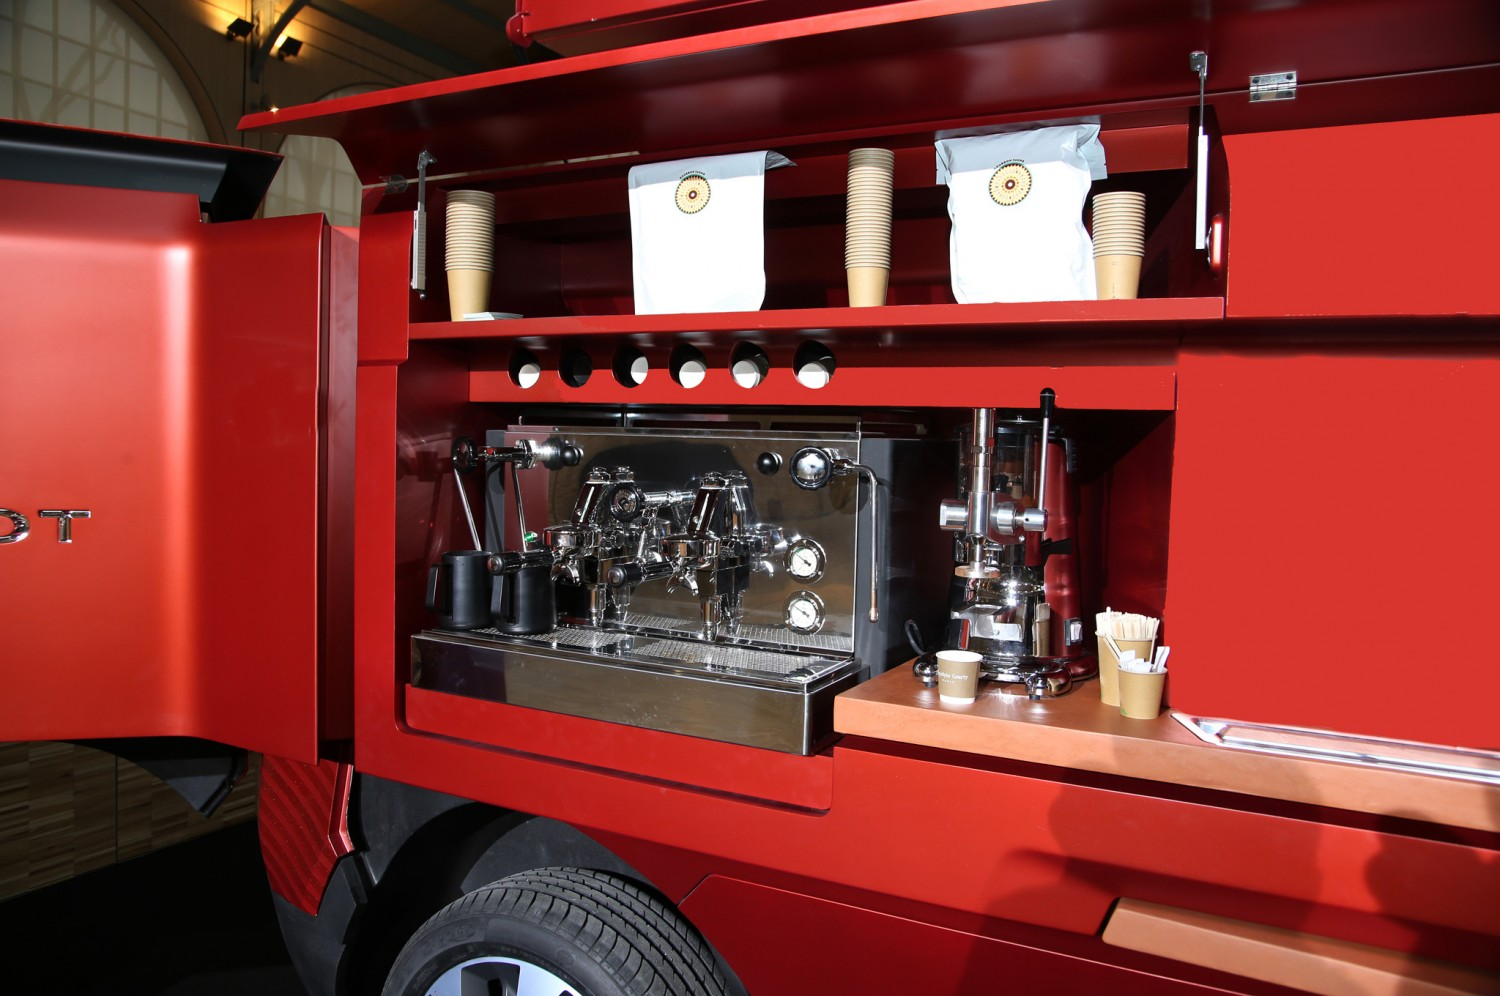 peugeot-food-truck-concept-rocket-espresso-machine